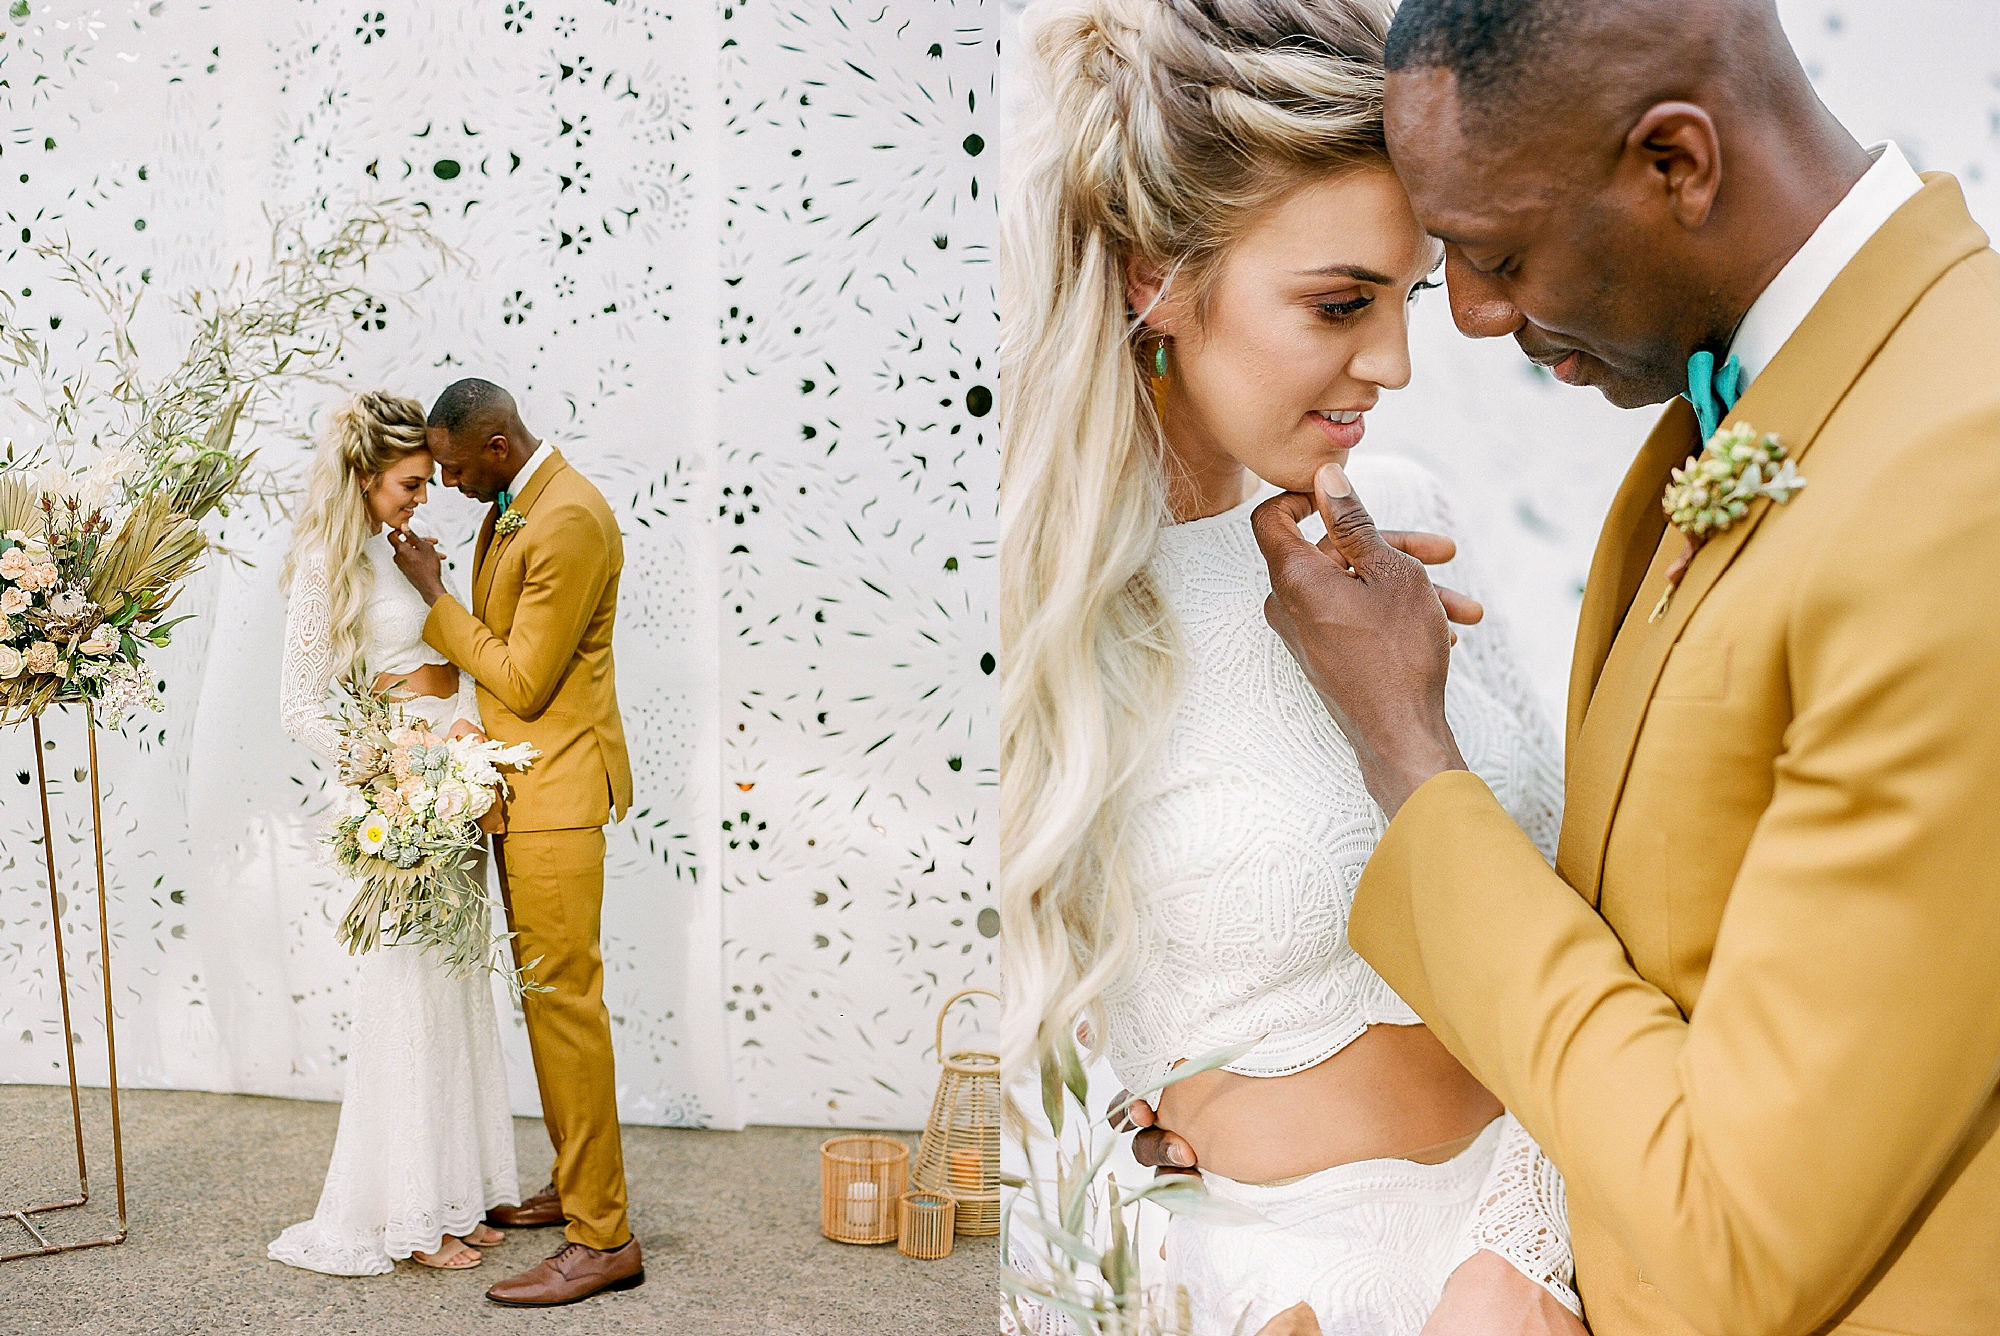 Colorful and Vibrant Wedding Photography at Fairmount Horticultural Center by Magdalena Studios 0025